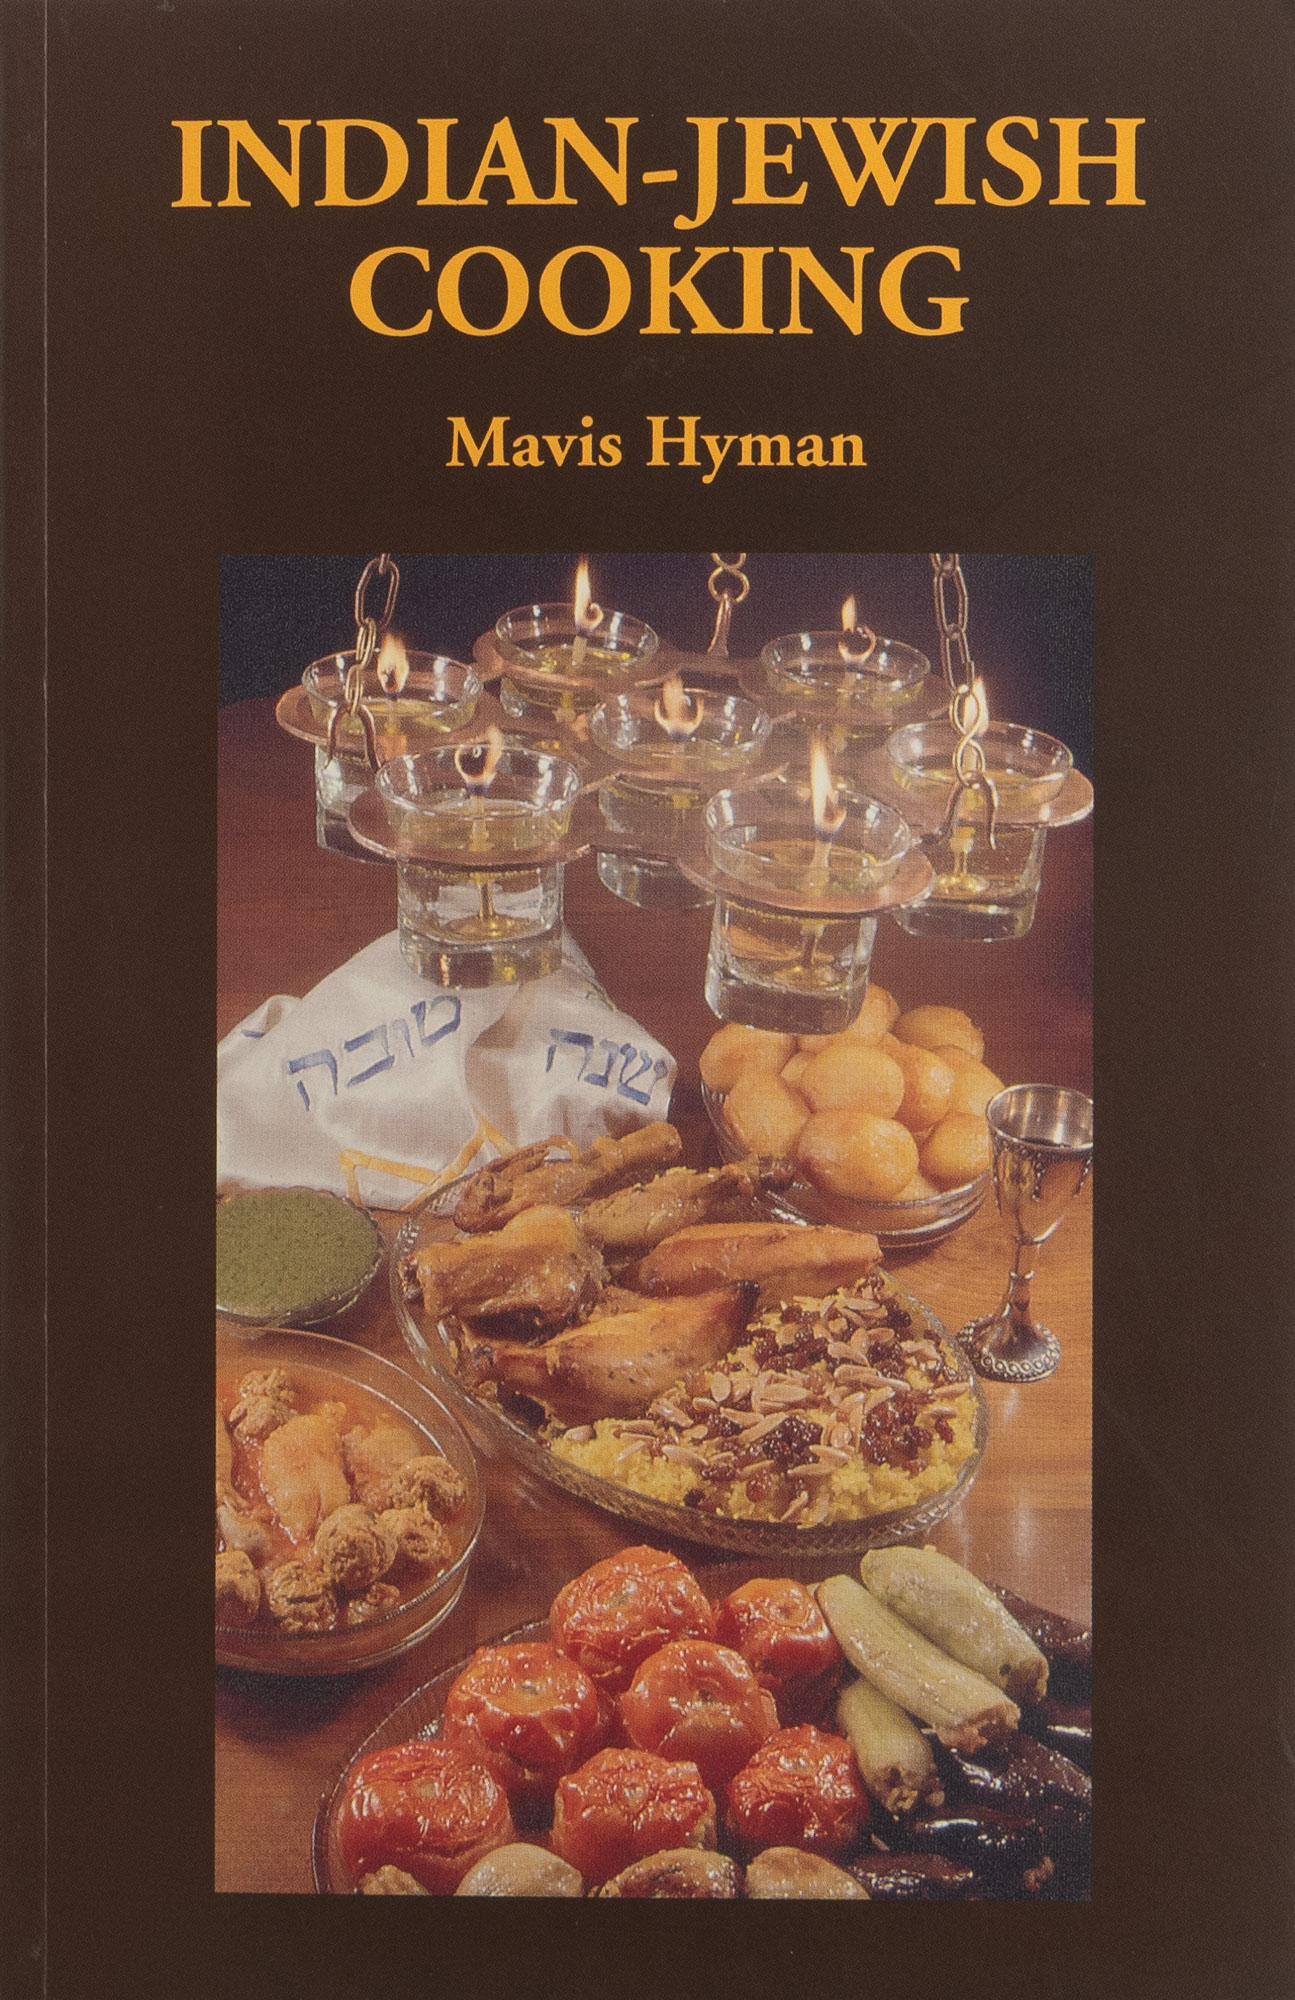 The cover of the cookbook Indian-Jewish Cooking